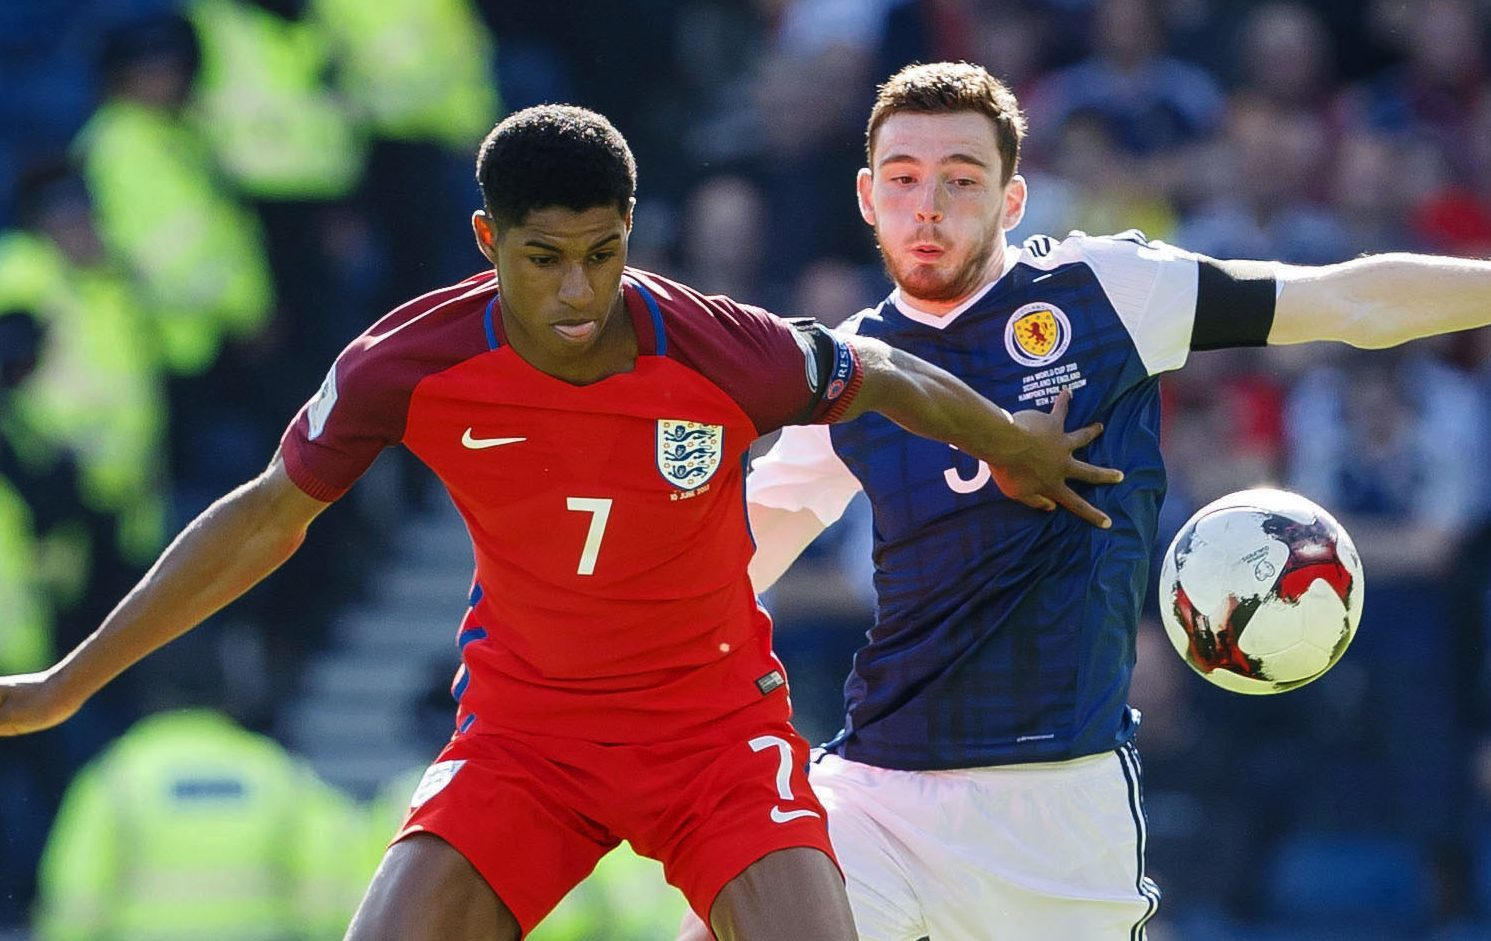 Andy Robertson competes with England's Marcus Rashford.